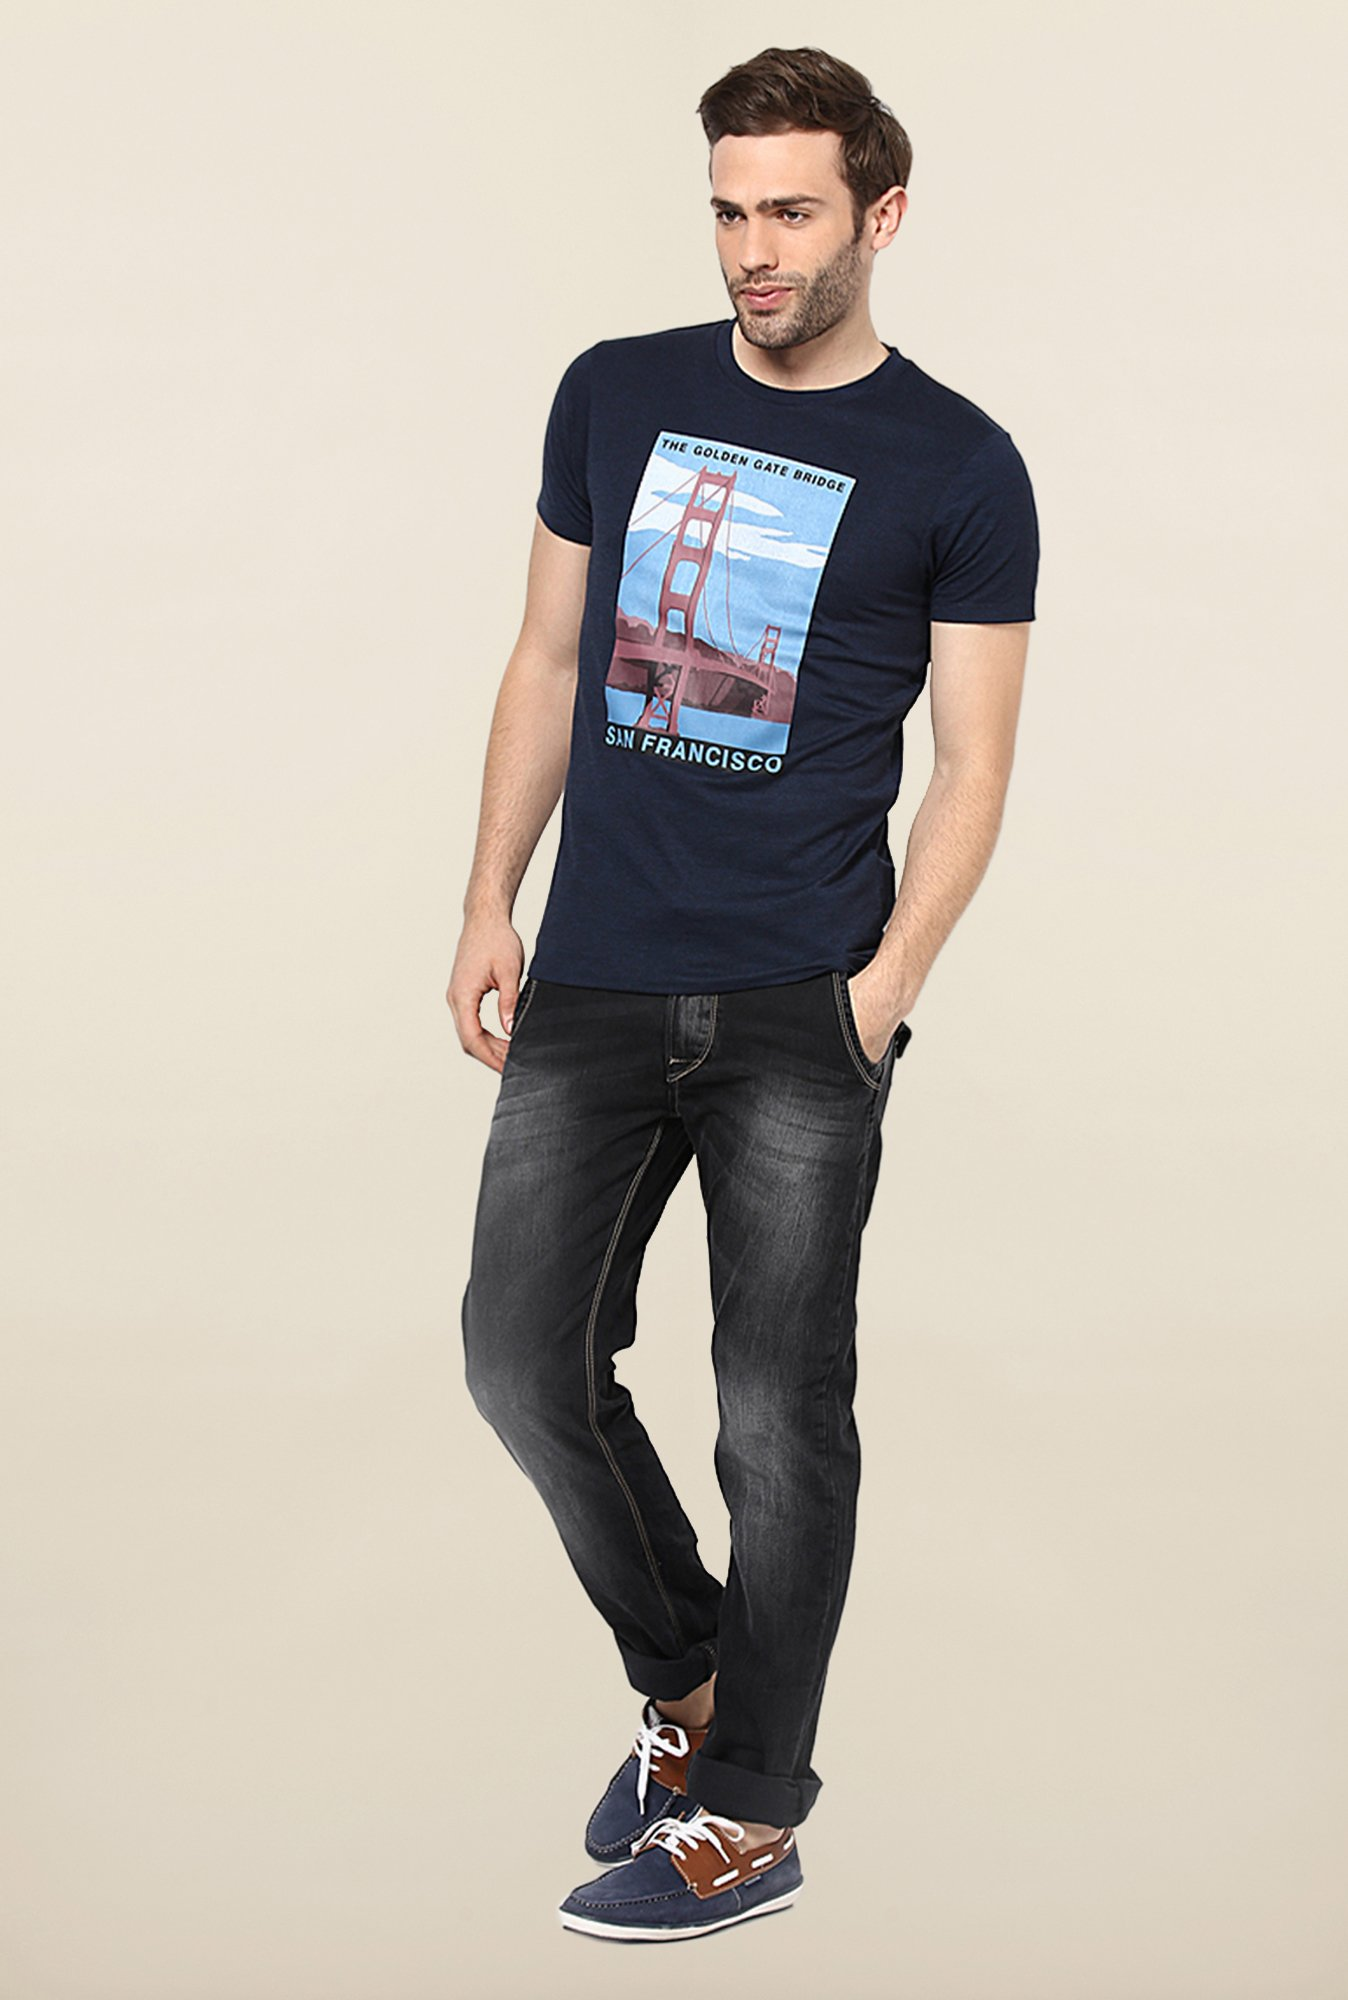 Jack & Jones Navy Printed Crew Neck T-Shirt